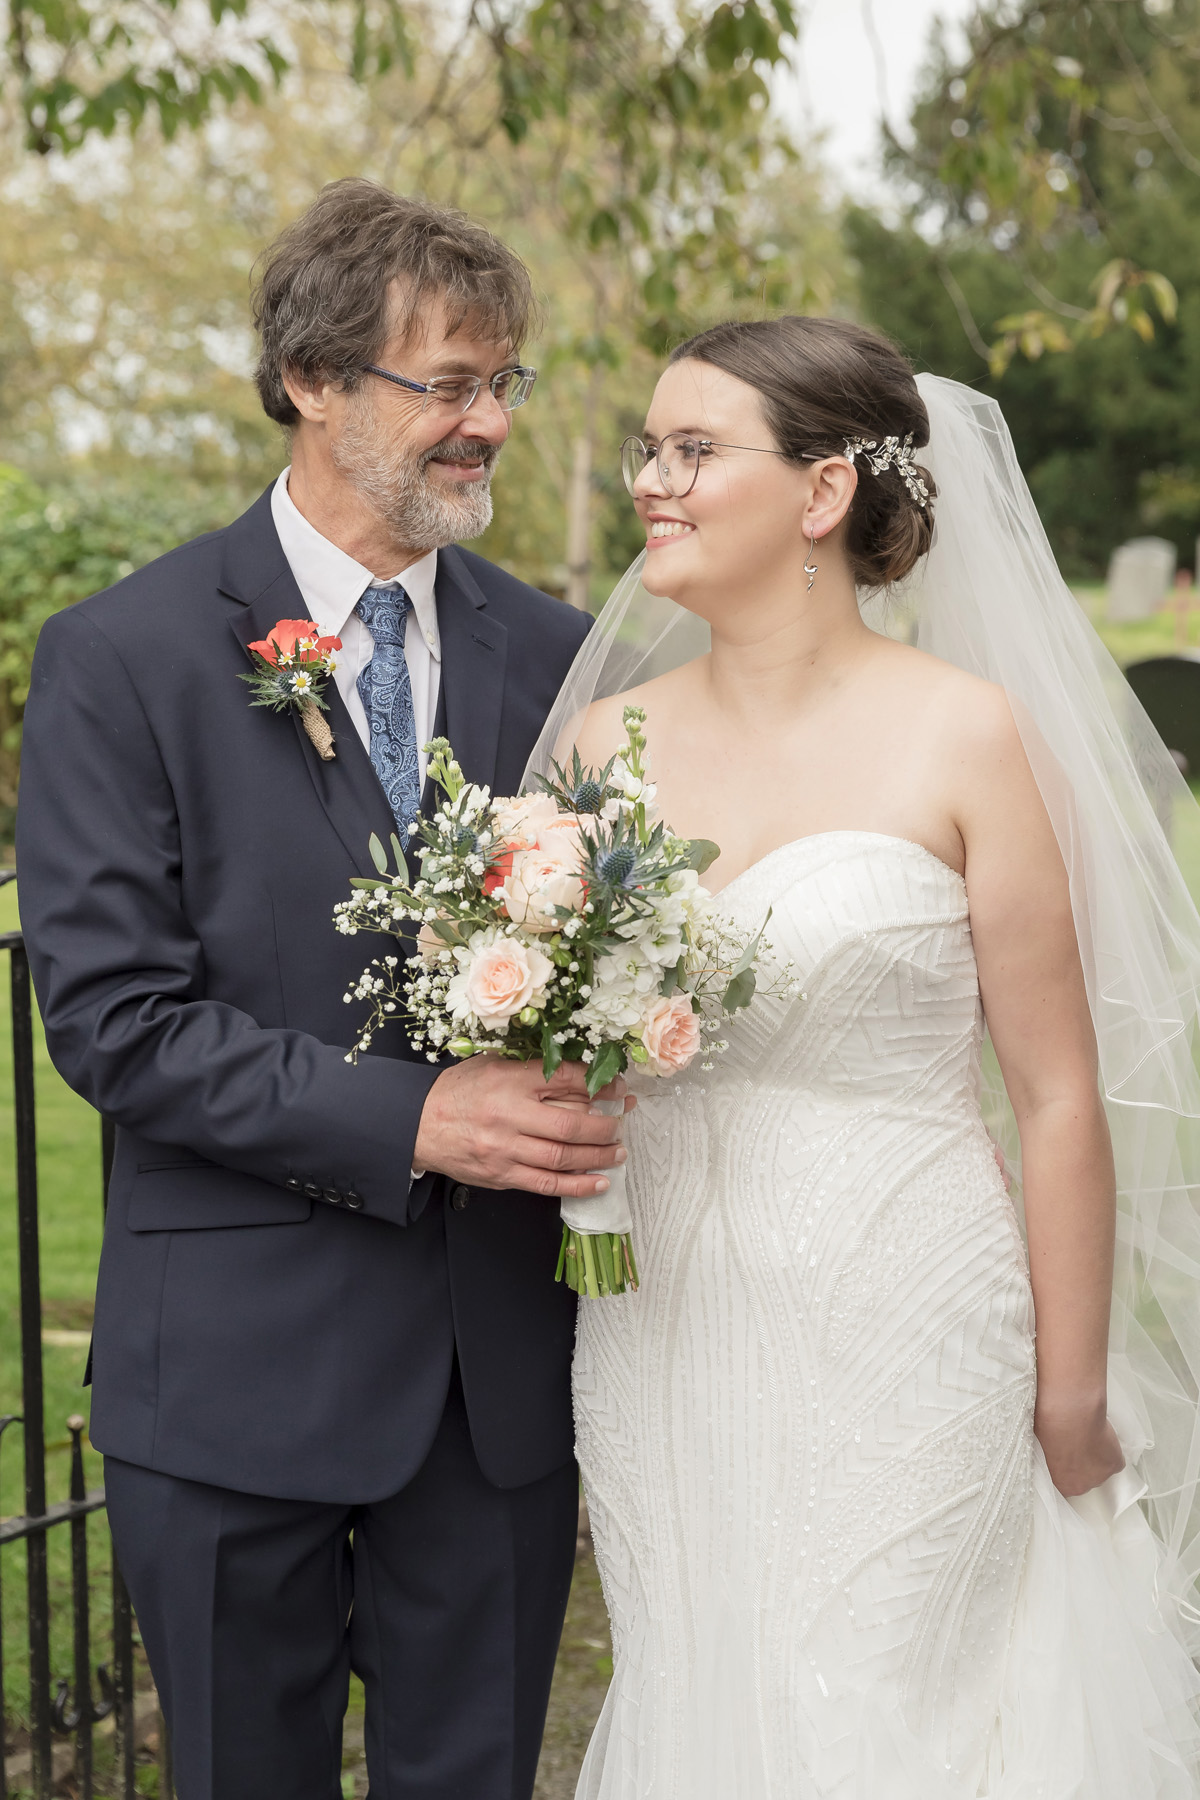 Wedding photo of Bride with her farther just before the wedding service